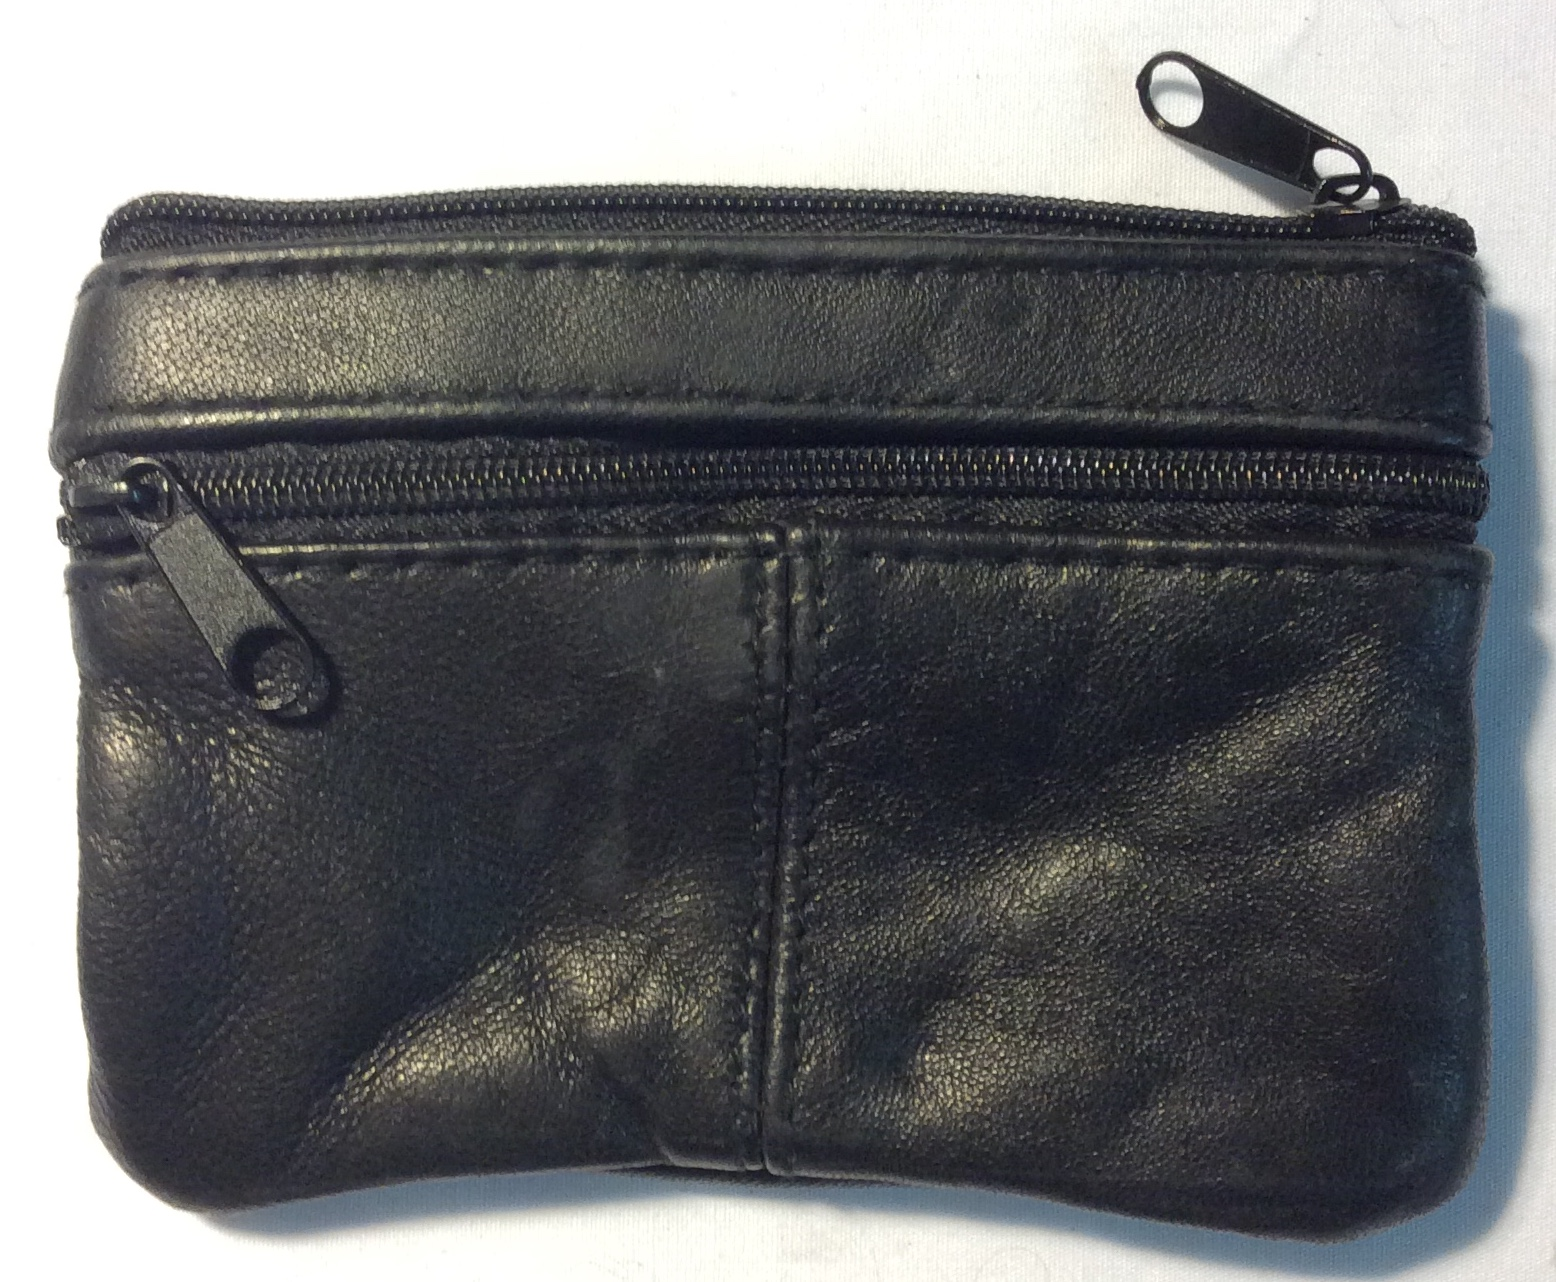 Black worn leather with 3 zippered